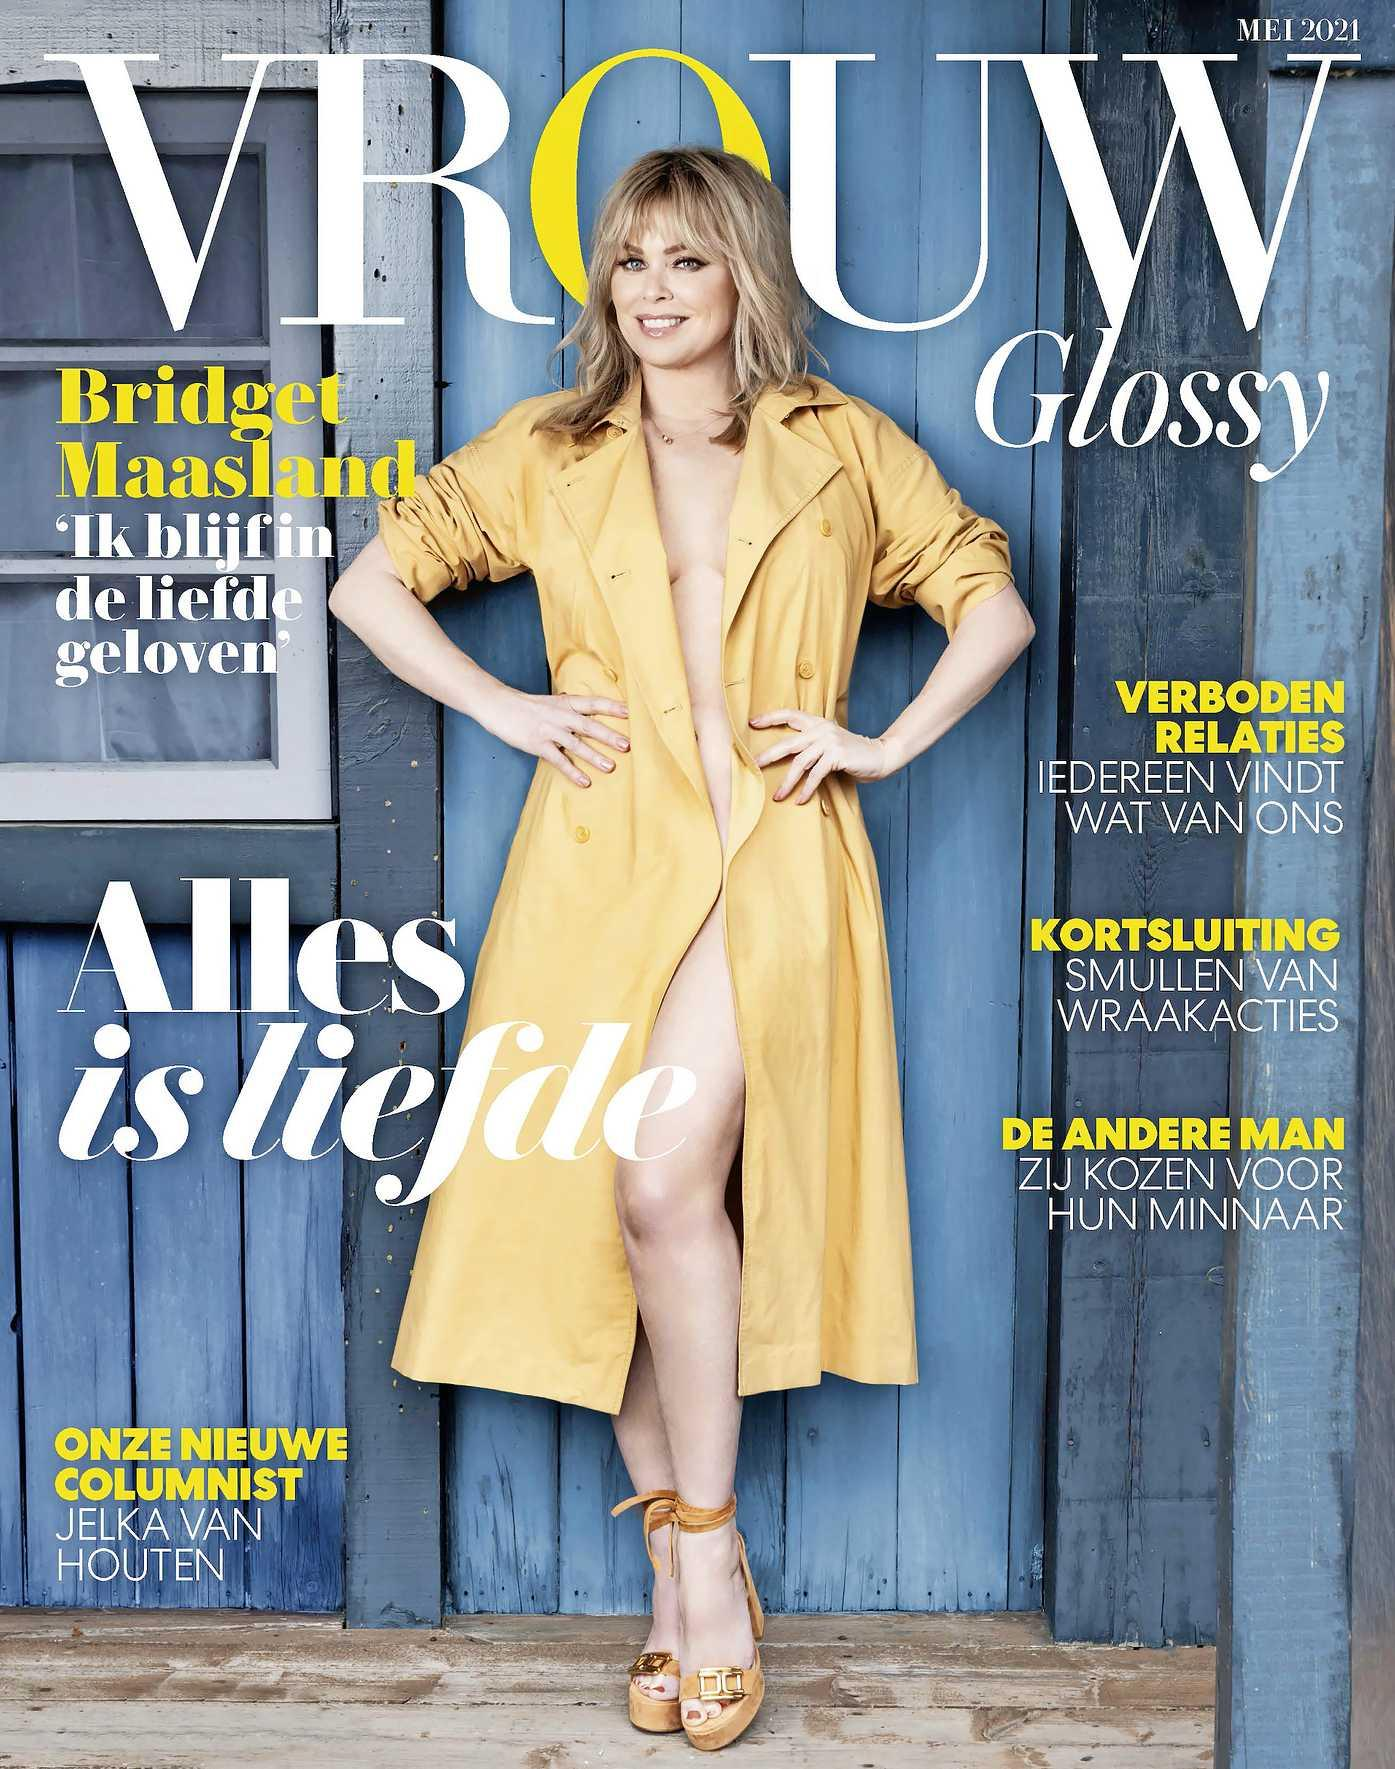 Cover Vrouw Glossy 3  13-04-2021